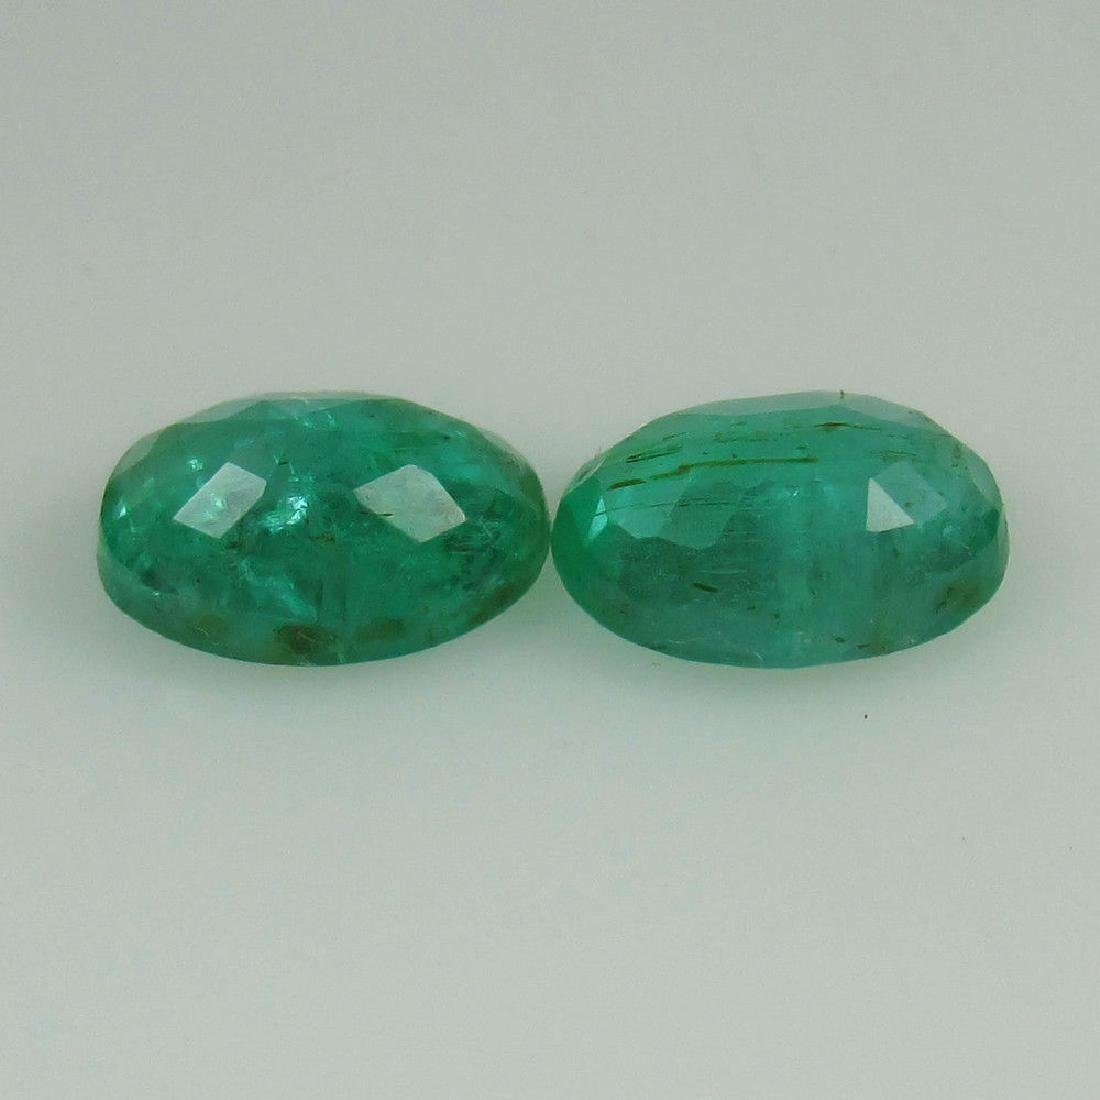 1.65 Ct Genuine Loose Zambian Emerald Oval Pair Very - 2